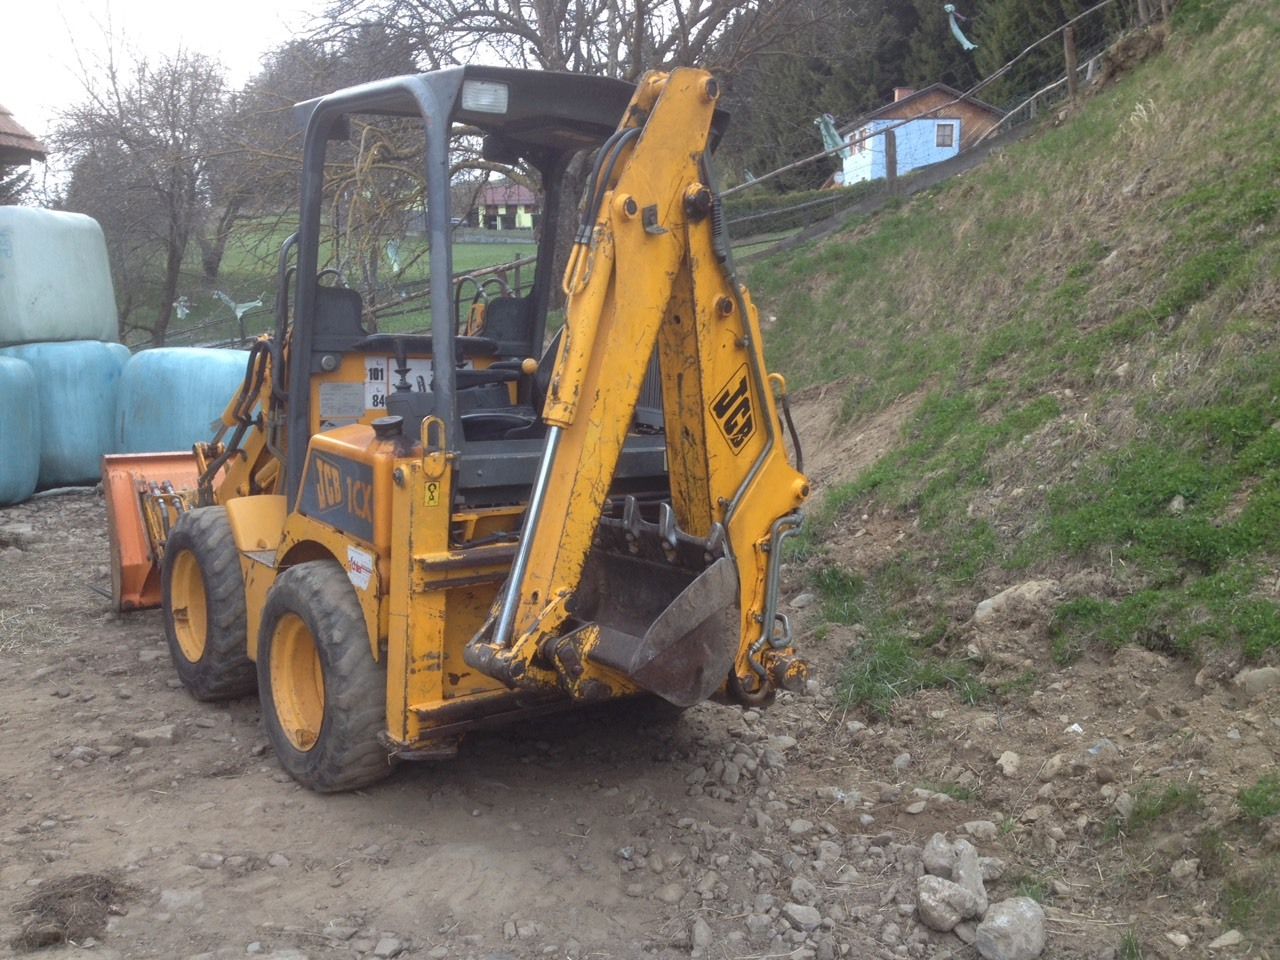 jcb bagger gewicht jcb 4cx gebraucht kaufen jcb vertrieb. Black Bedroom Furniture Sets. Home Design Ideas